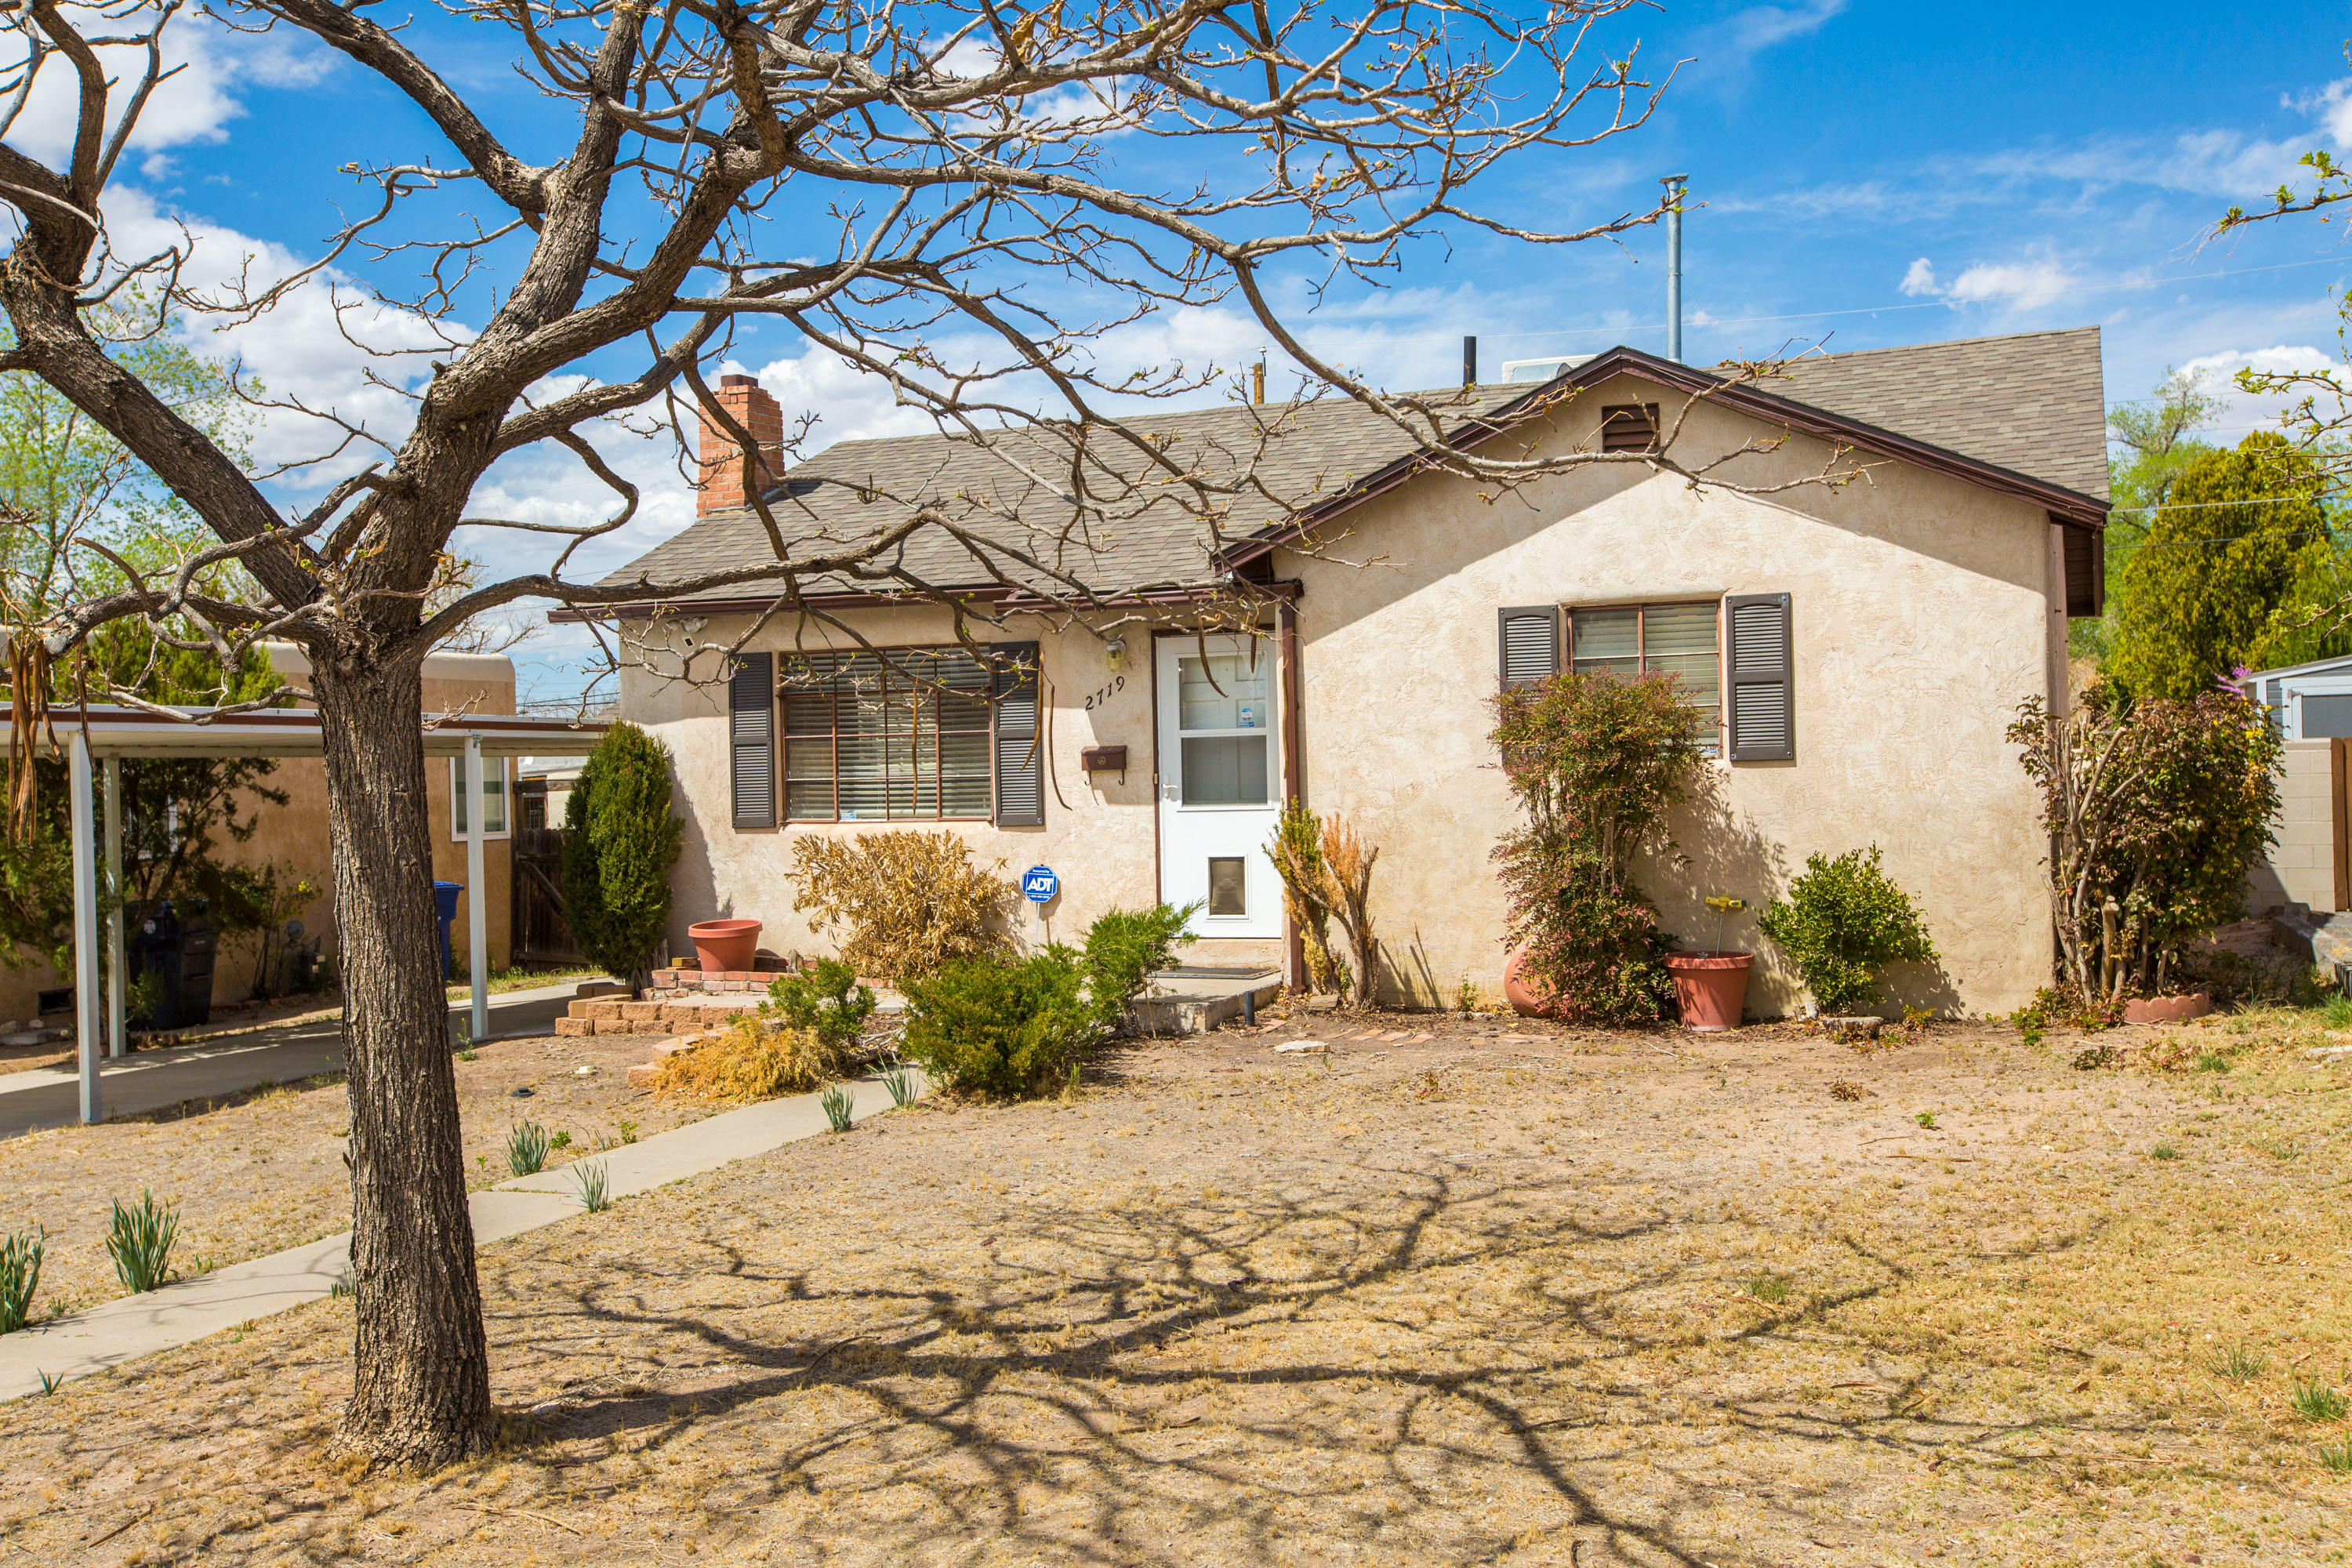 Great location near Hyder Park, Bandelier Elementary, CNM and the UNM campus! Mid-century home with fireplace, wood floors and dining room. Garage with storage room and extra large carport. Large patio area. A great opportunity to live in this popular neighborhood at an affordable price!